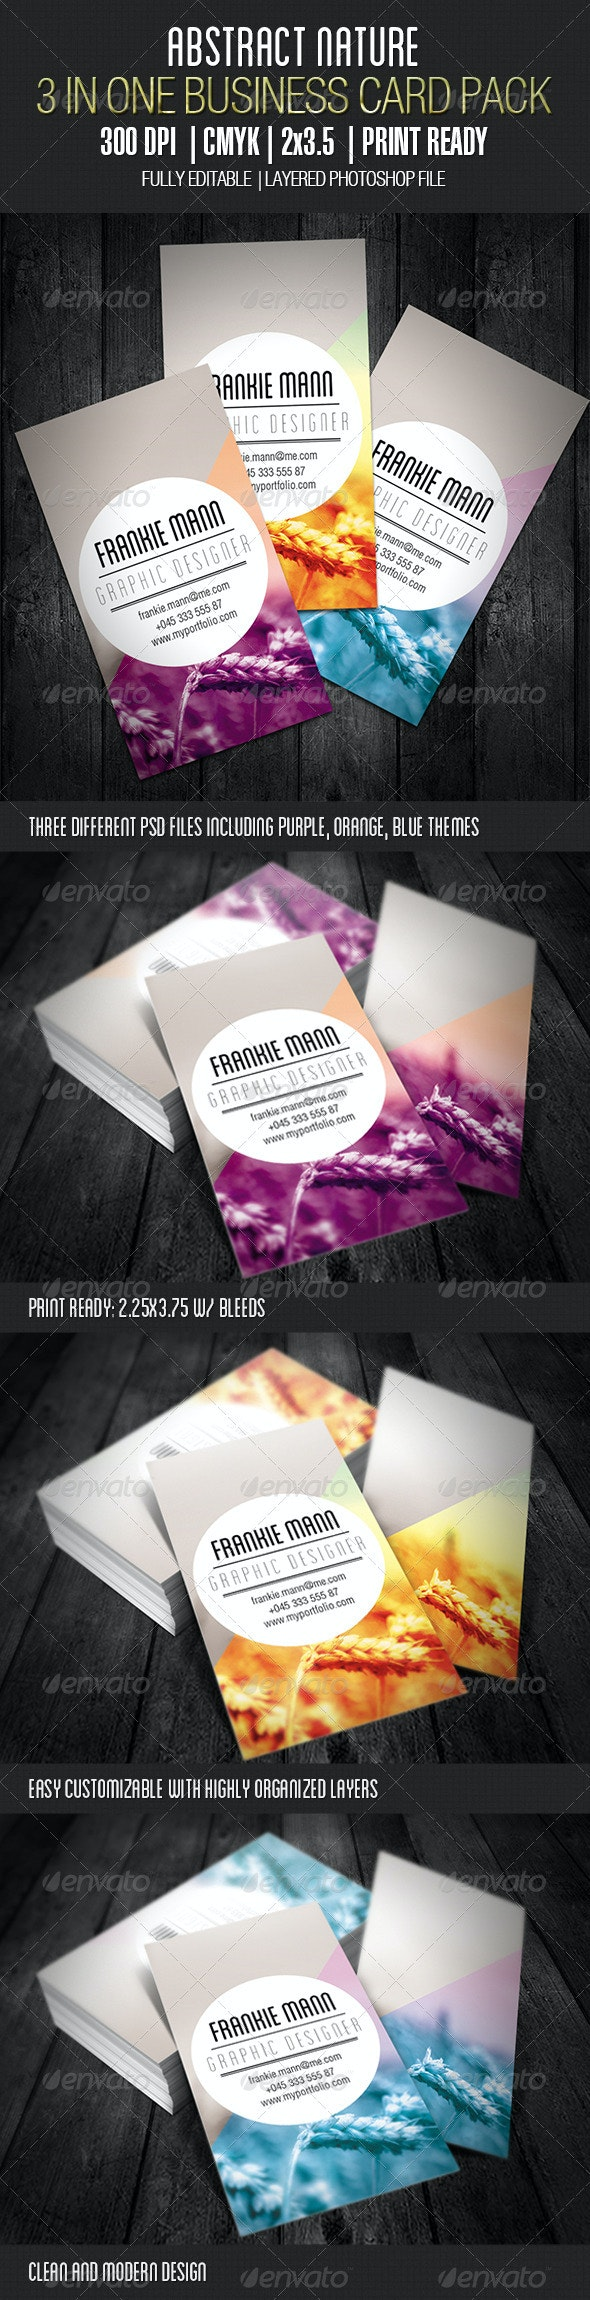 Abstract Nature Business Card - Business Cards Print Templates